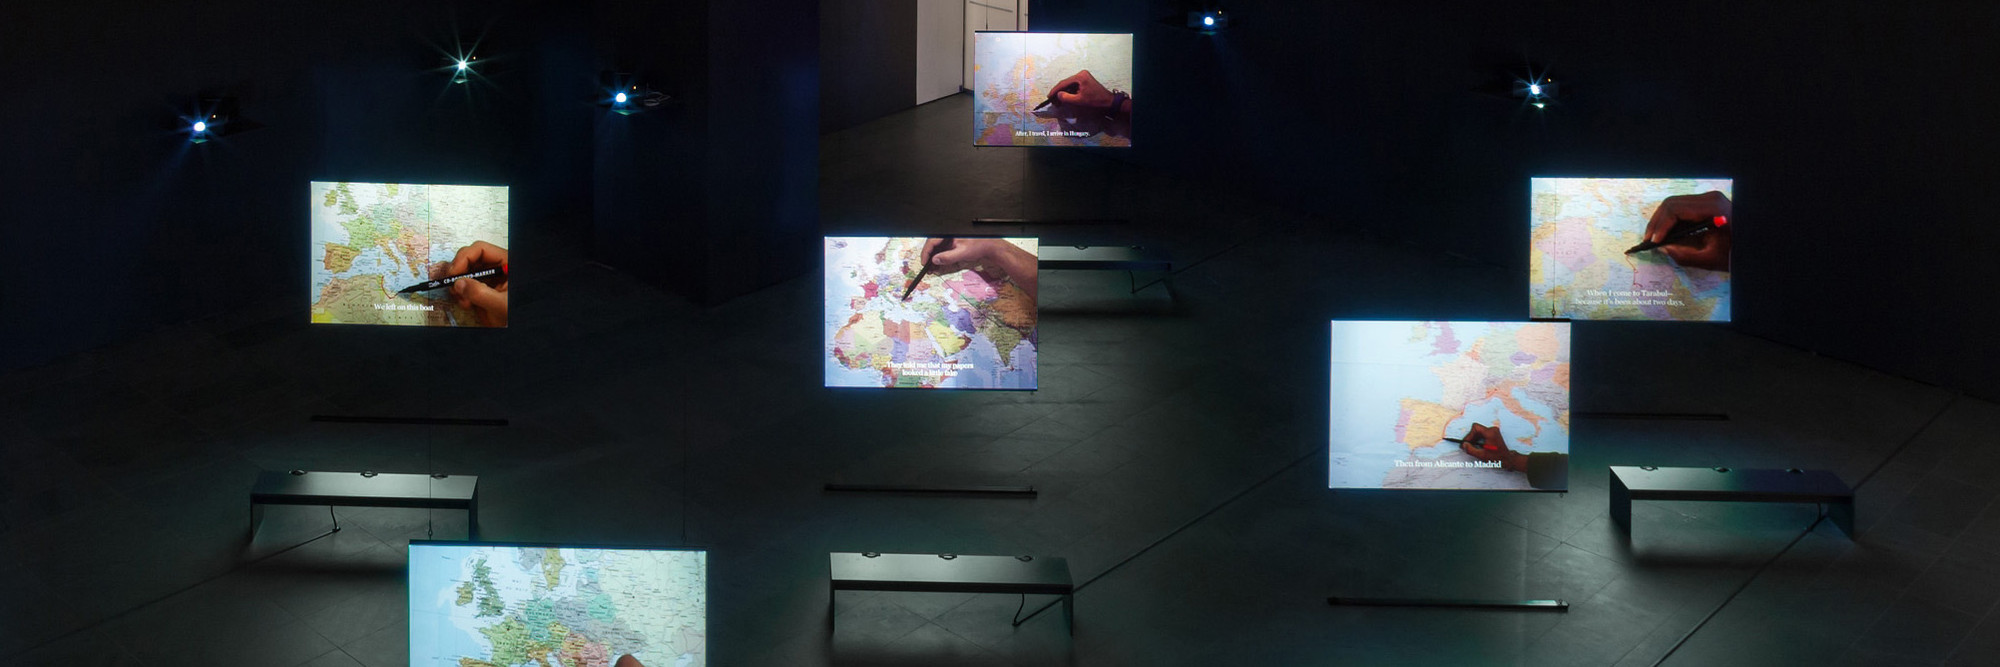 Bouchra Khalili. The Mapping Journey Project. 2008–11. Eight-channel video (color, sound). Installation view, Bouchra Khalili: The Mapping Journey Project, The Museum of Modern Art, New York, April 9–August 28, 2016. The Museum of Modern Art, New York. Fund for the Twenty First Century, 2014. © 2016 Bouchra Khalili. Digital image © 2016 The Museum of Modern Art. Photo: Jonathan Muzikar